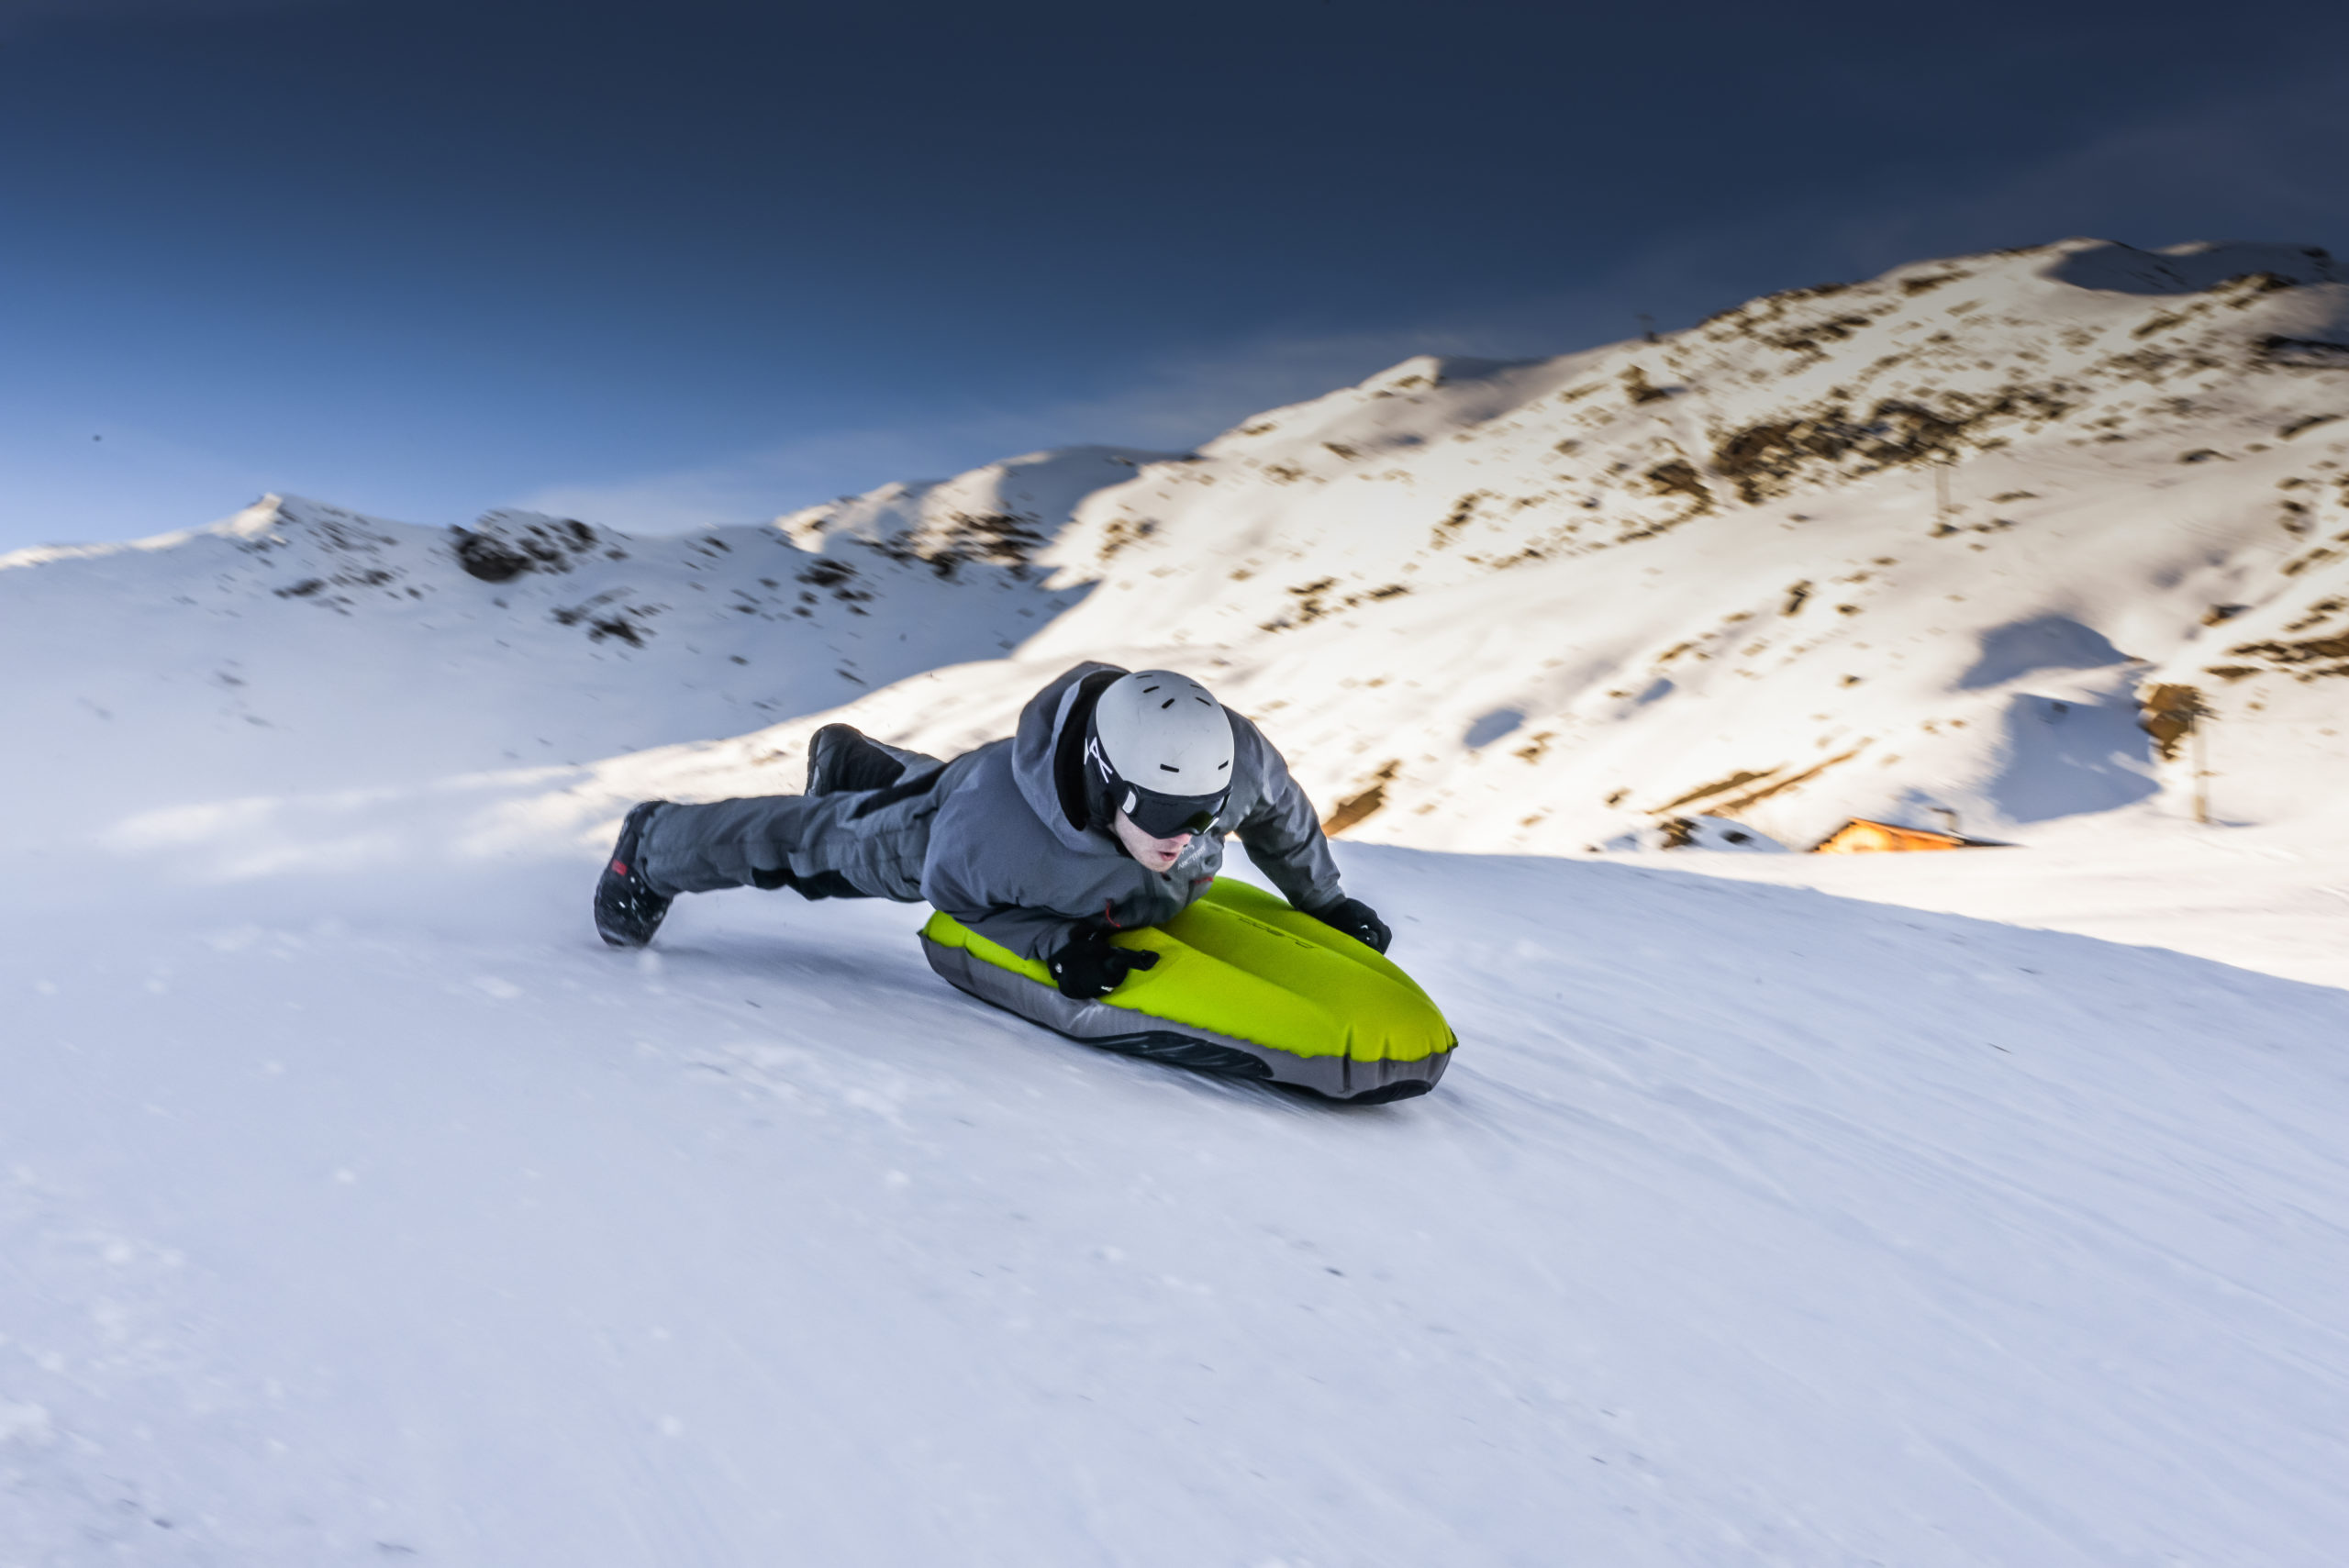 airboard_23-12-2013_2241-3